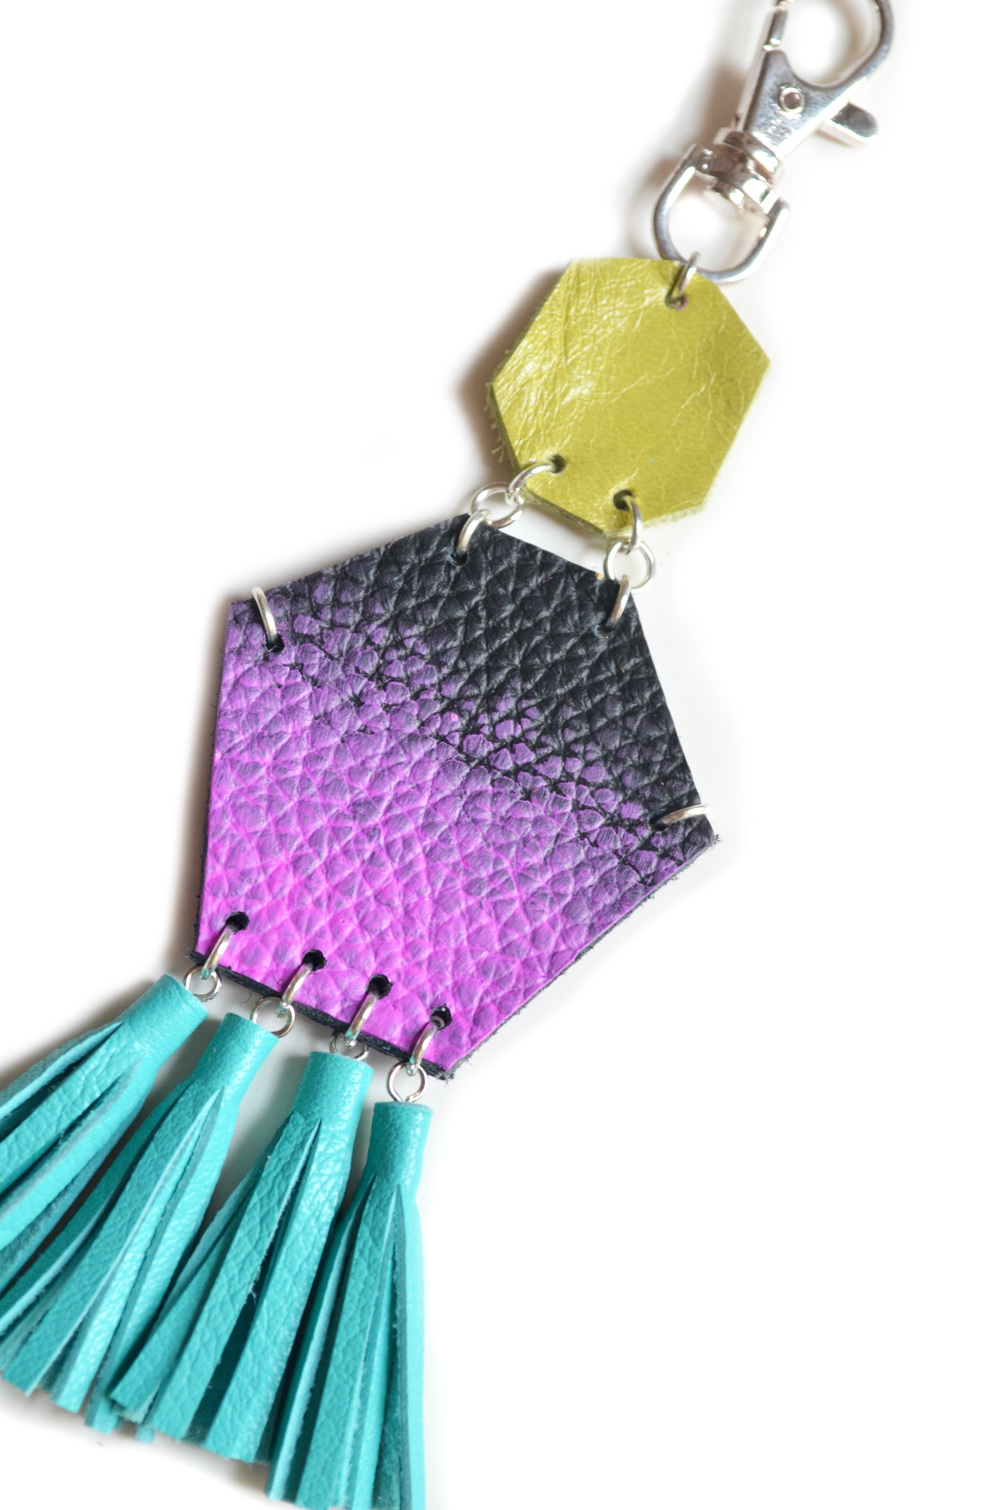 Tassel Key Chain, Purple Dipped Leather Tassel Key Chain, Turquoise Fringe Purse Clip, Purple Ombre, Teal and Green Leather Key Fob, Leather Accessories 2.jpg